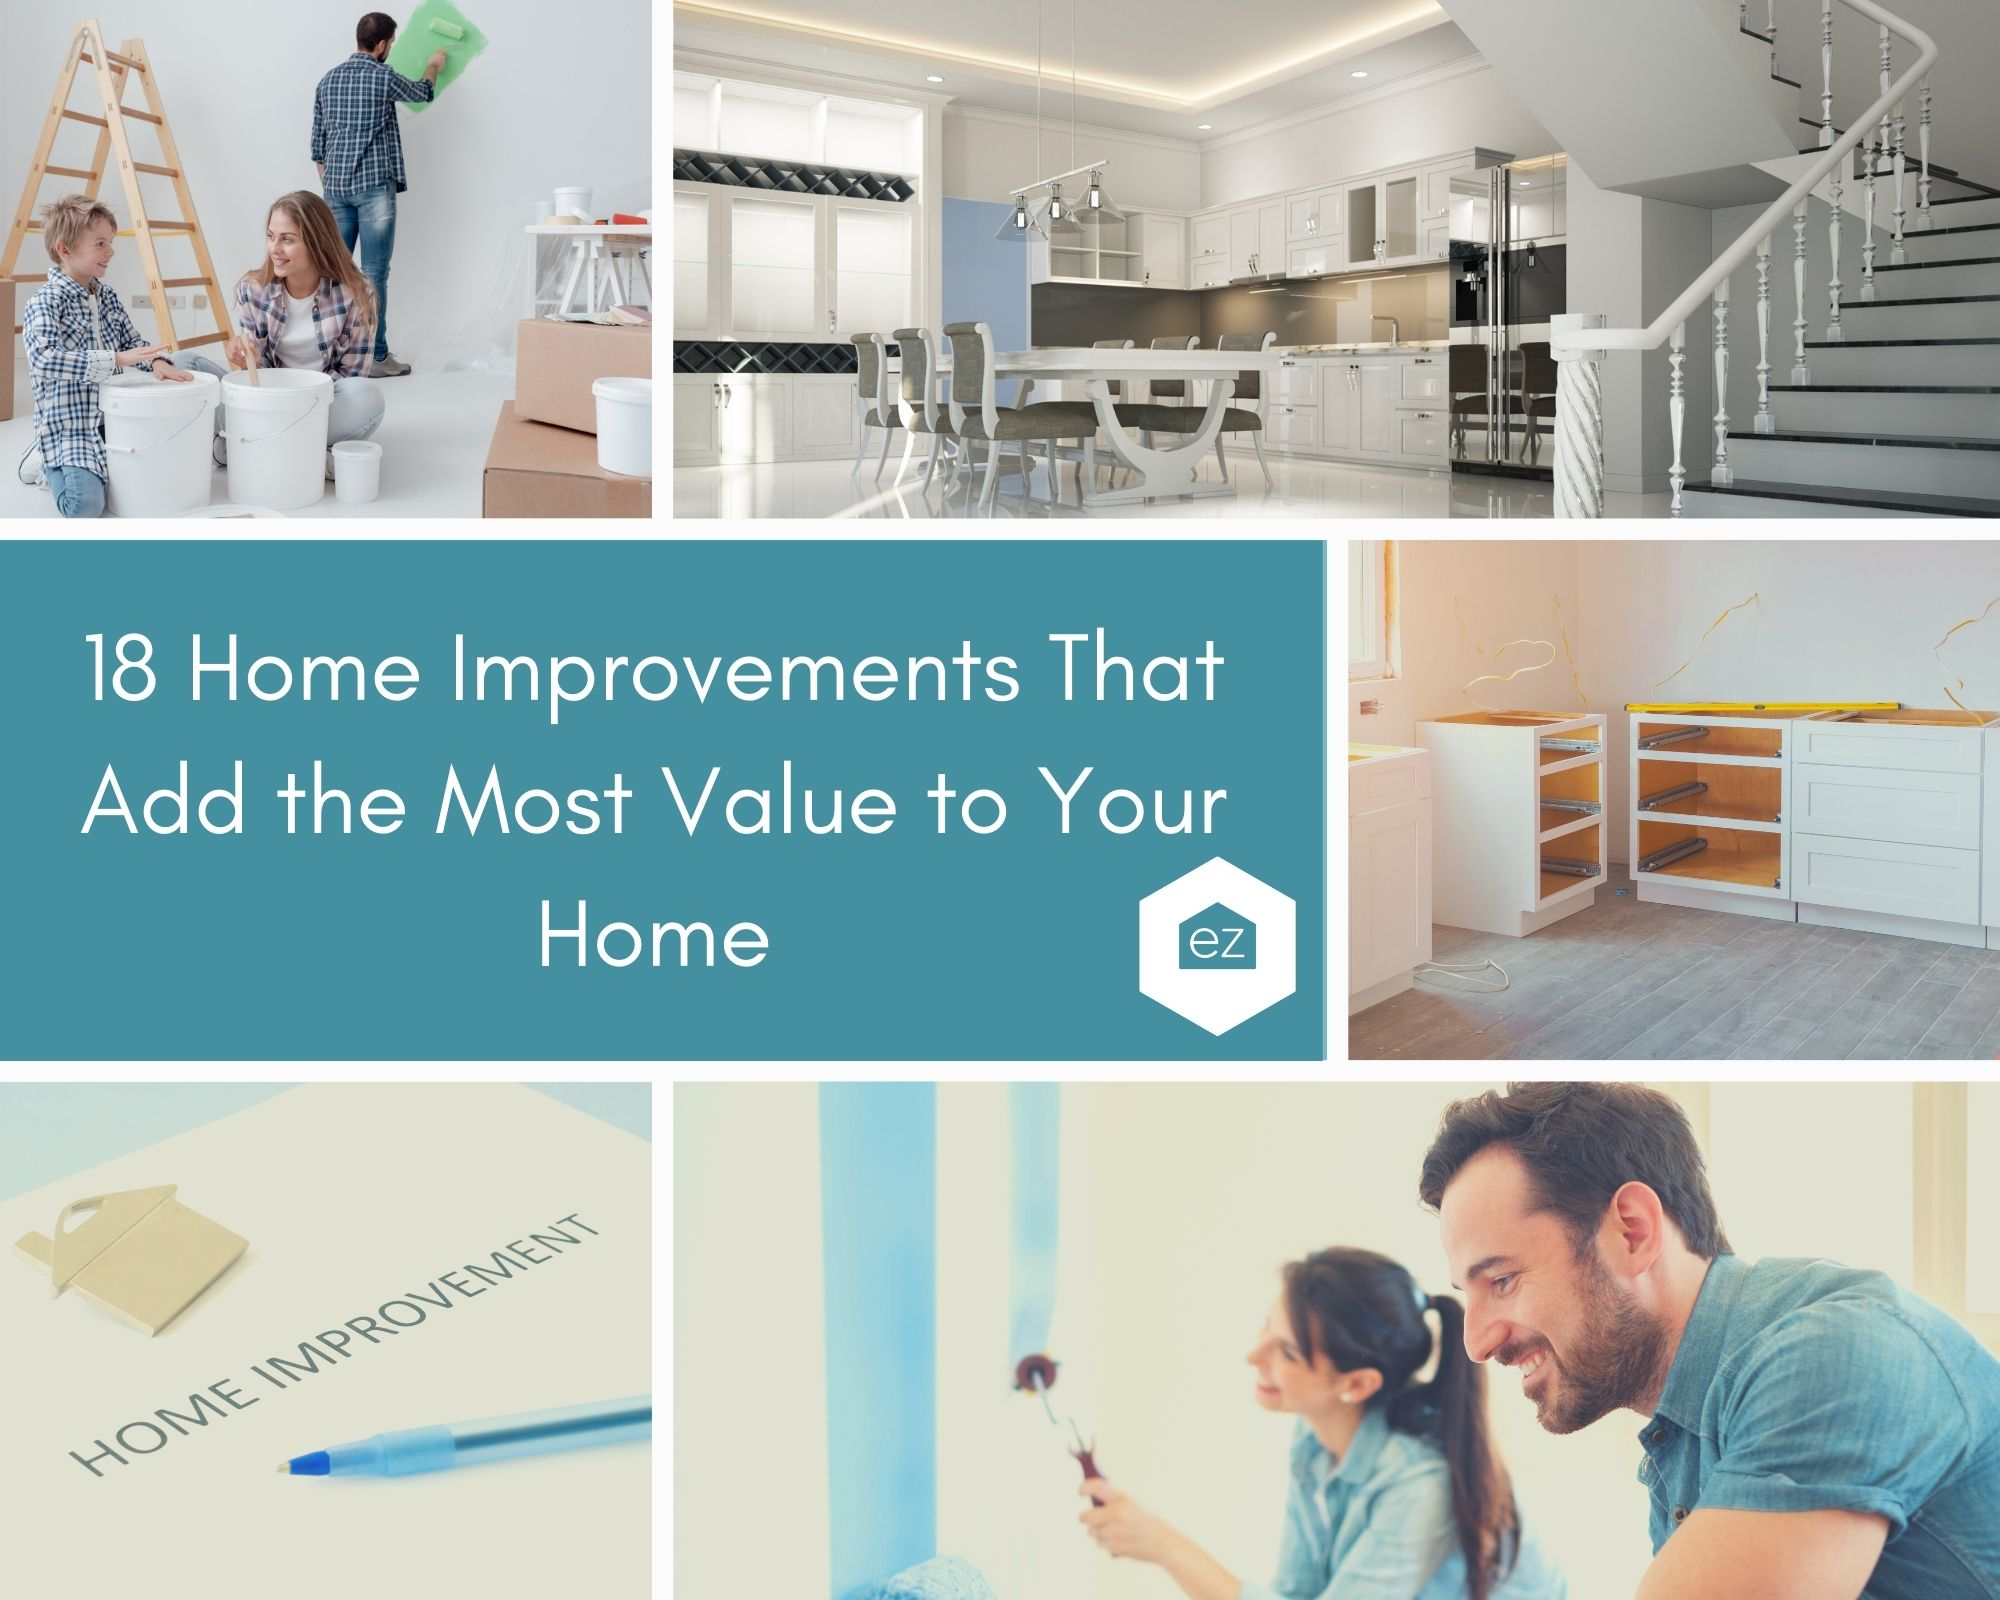 Home Improvement photos, painting with family, upgraded kitchen